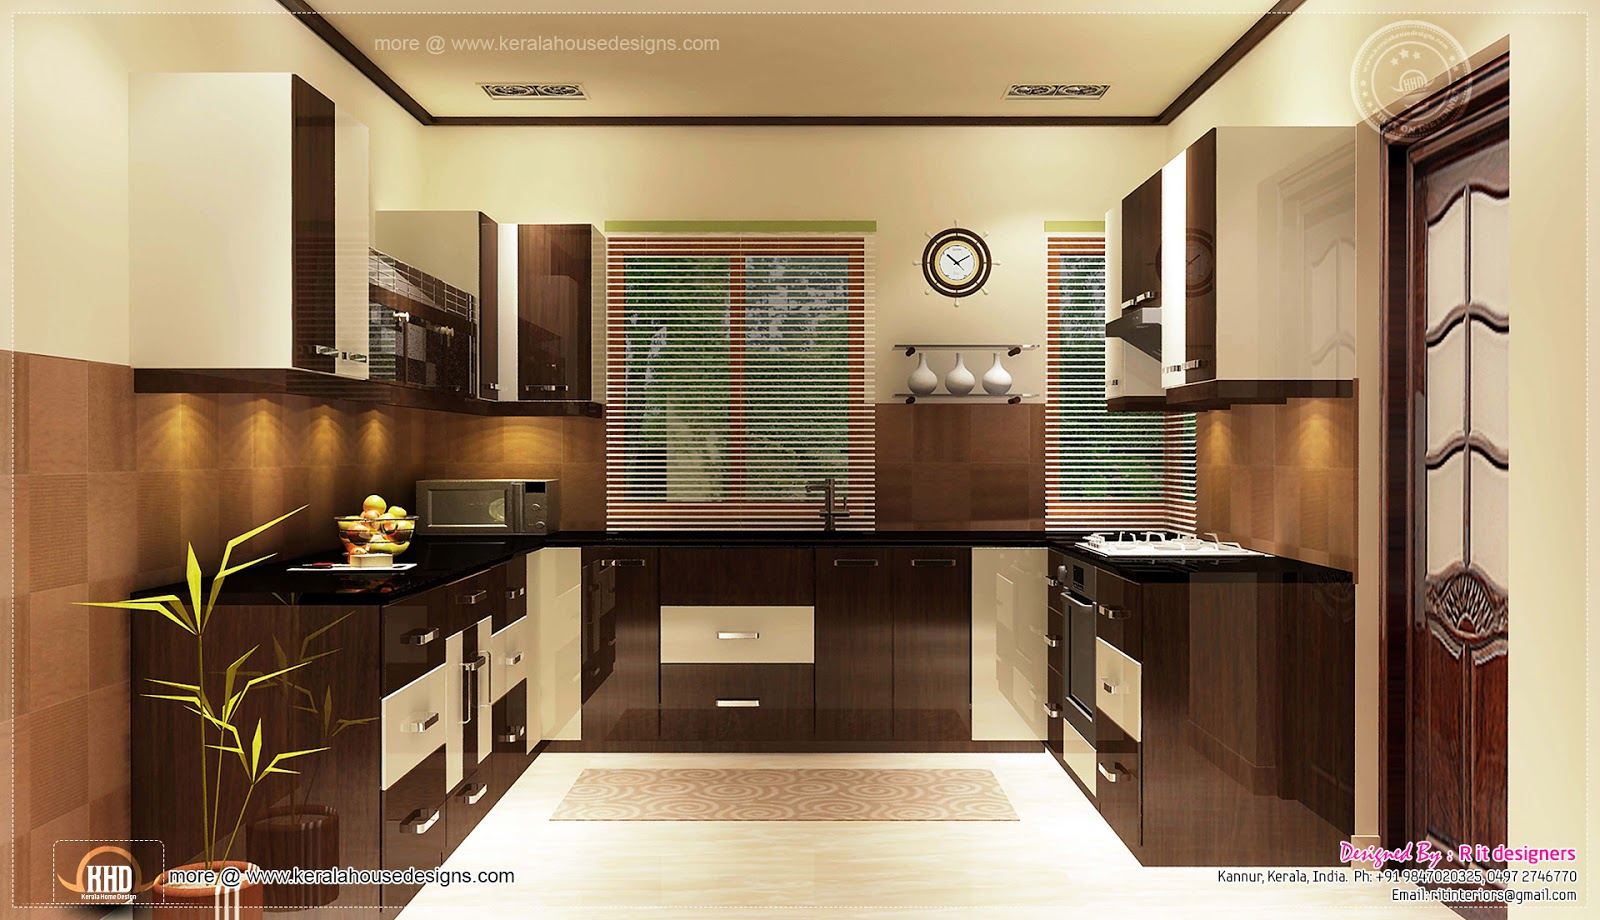 Home interior designs by rit designers kerala home Design interior of house